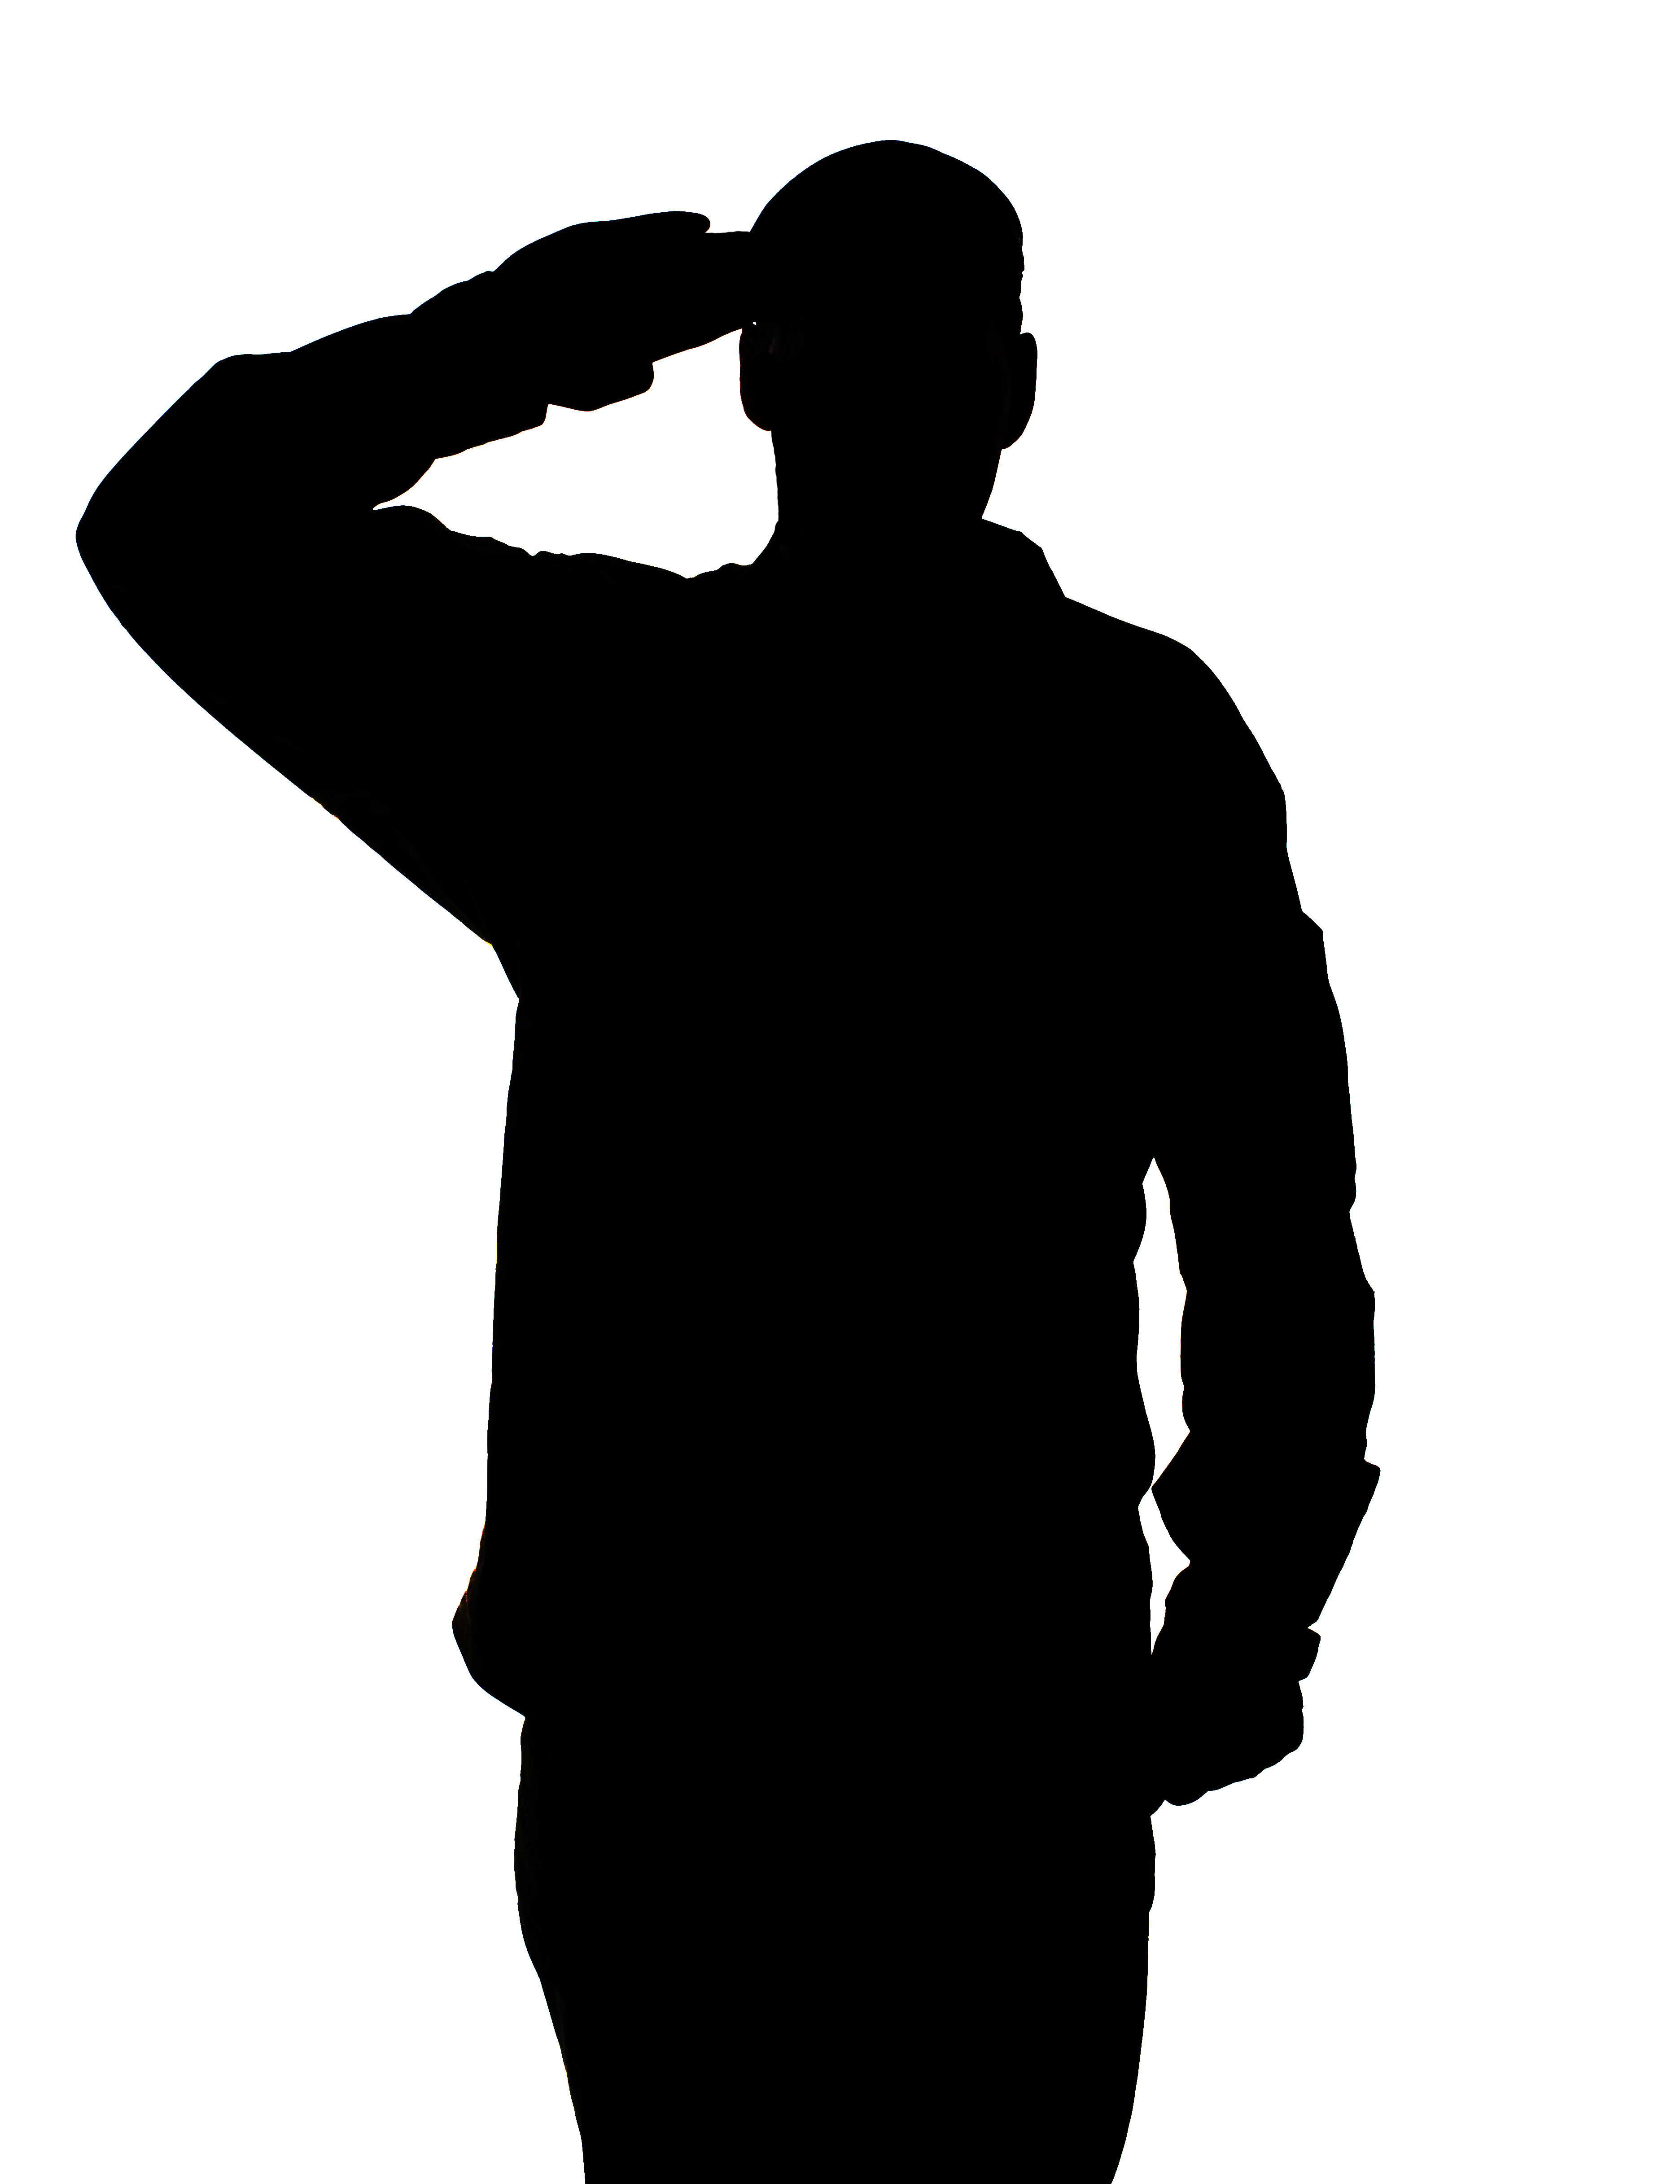 filebritish army soldier saluting mod 45154891jpg